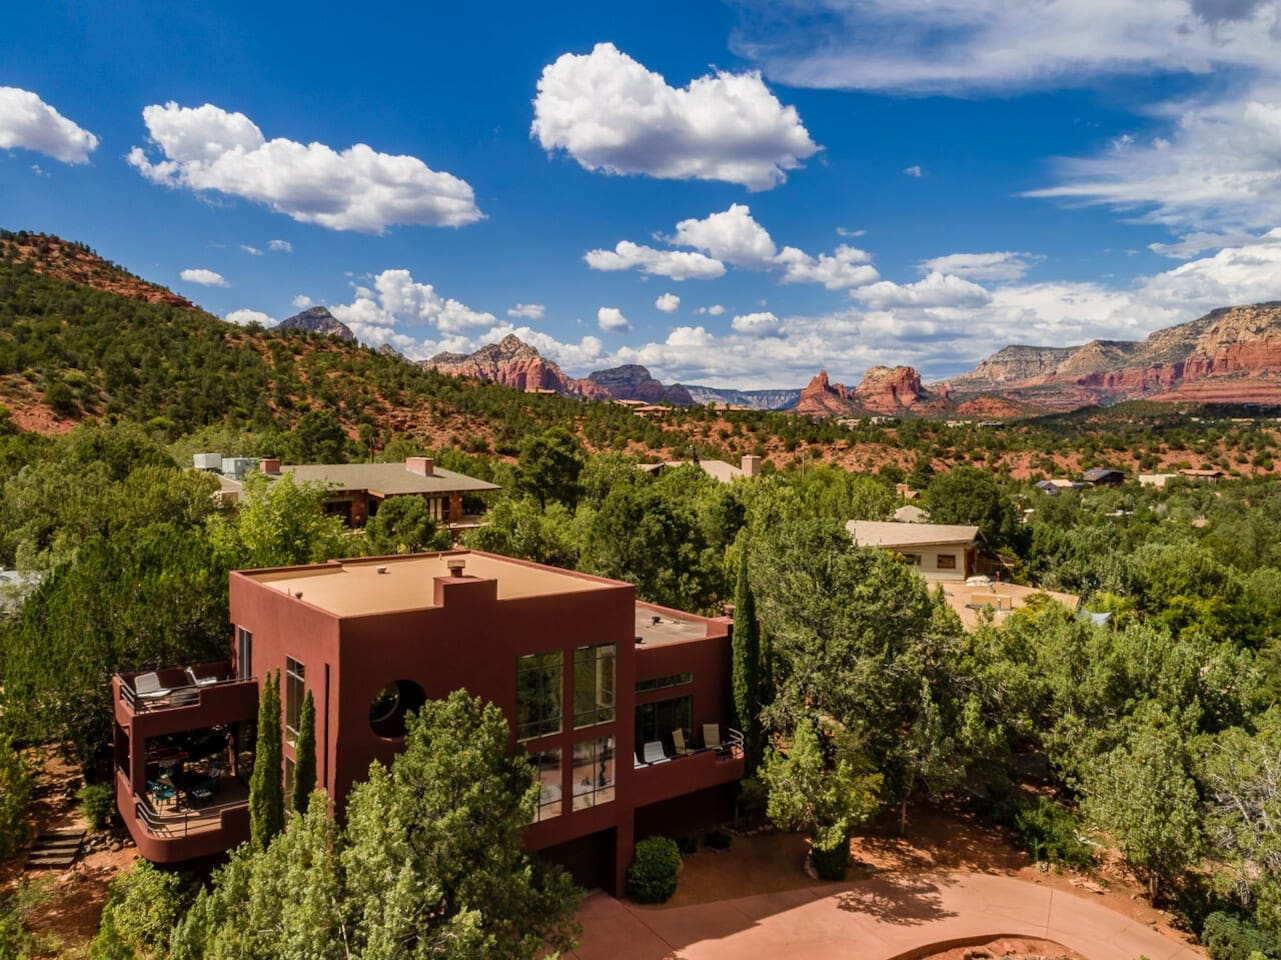 Uptown Sedona with 240 Degree Red Rock Views!